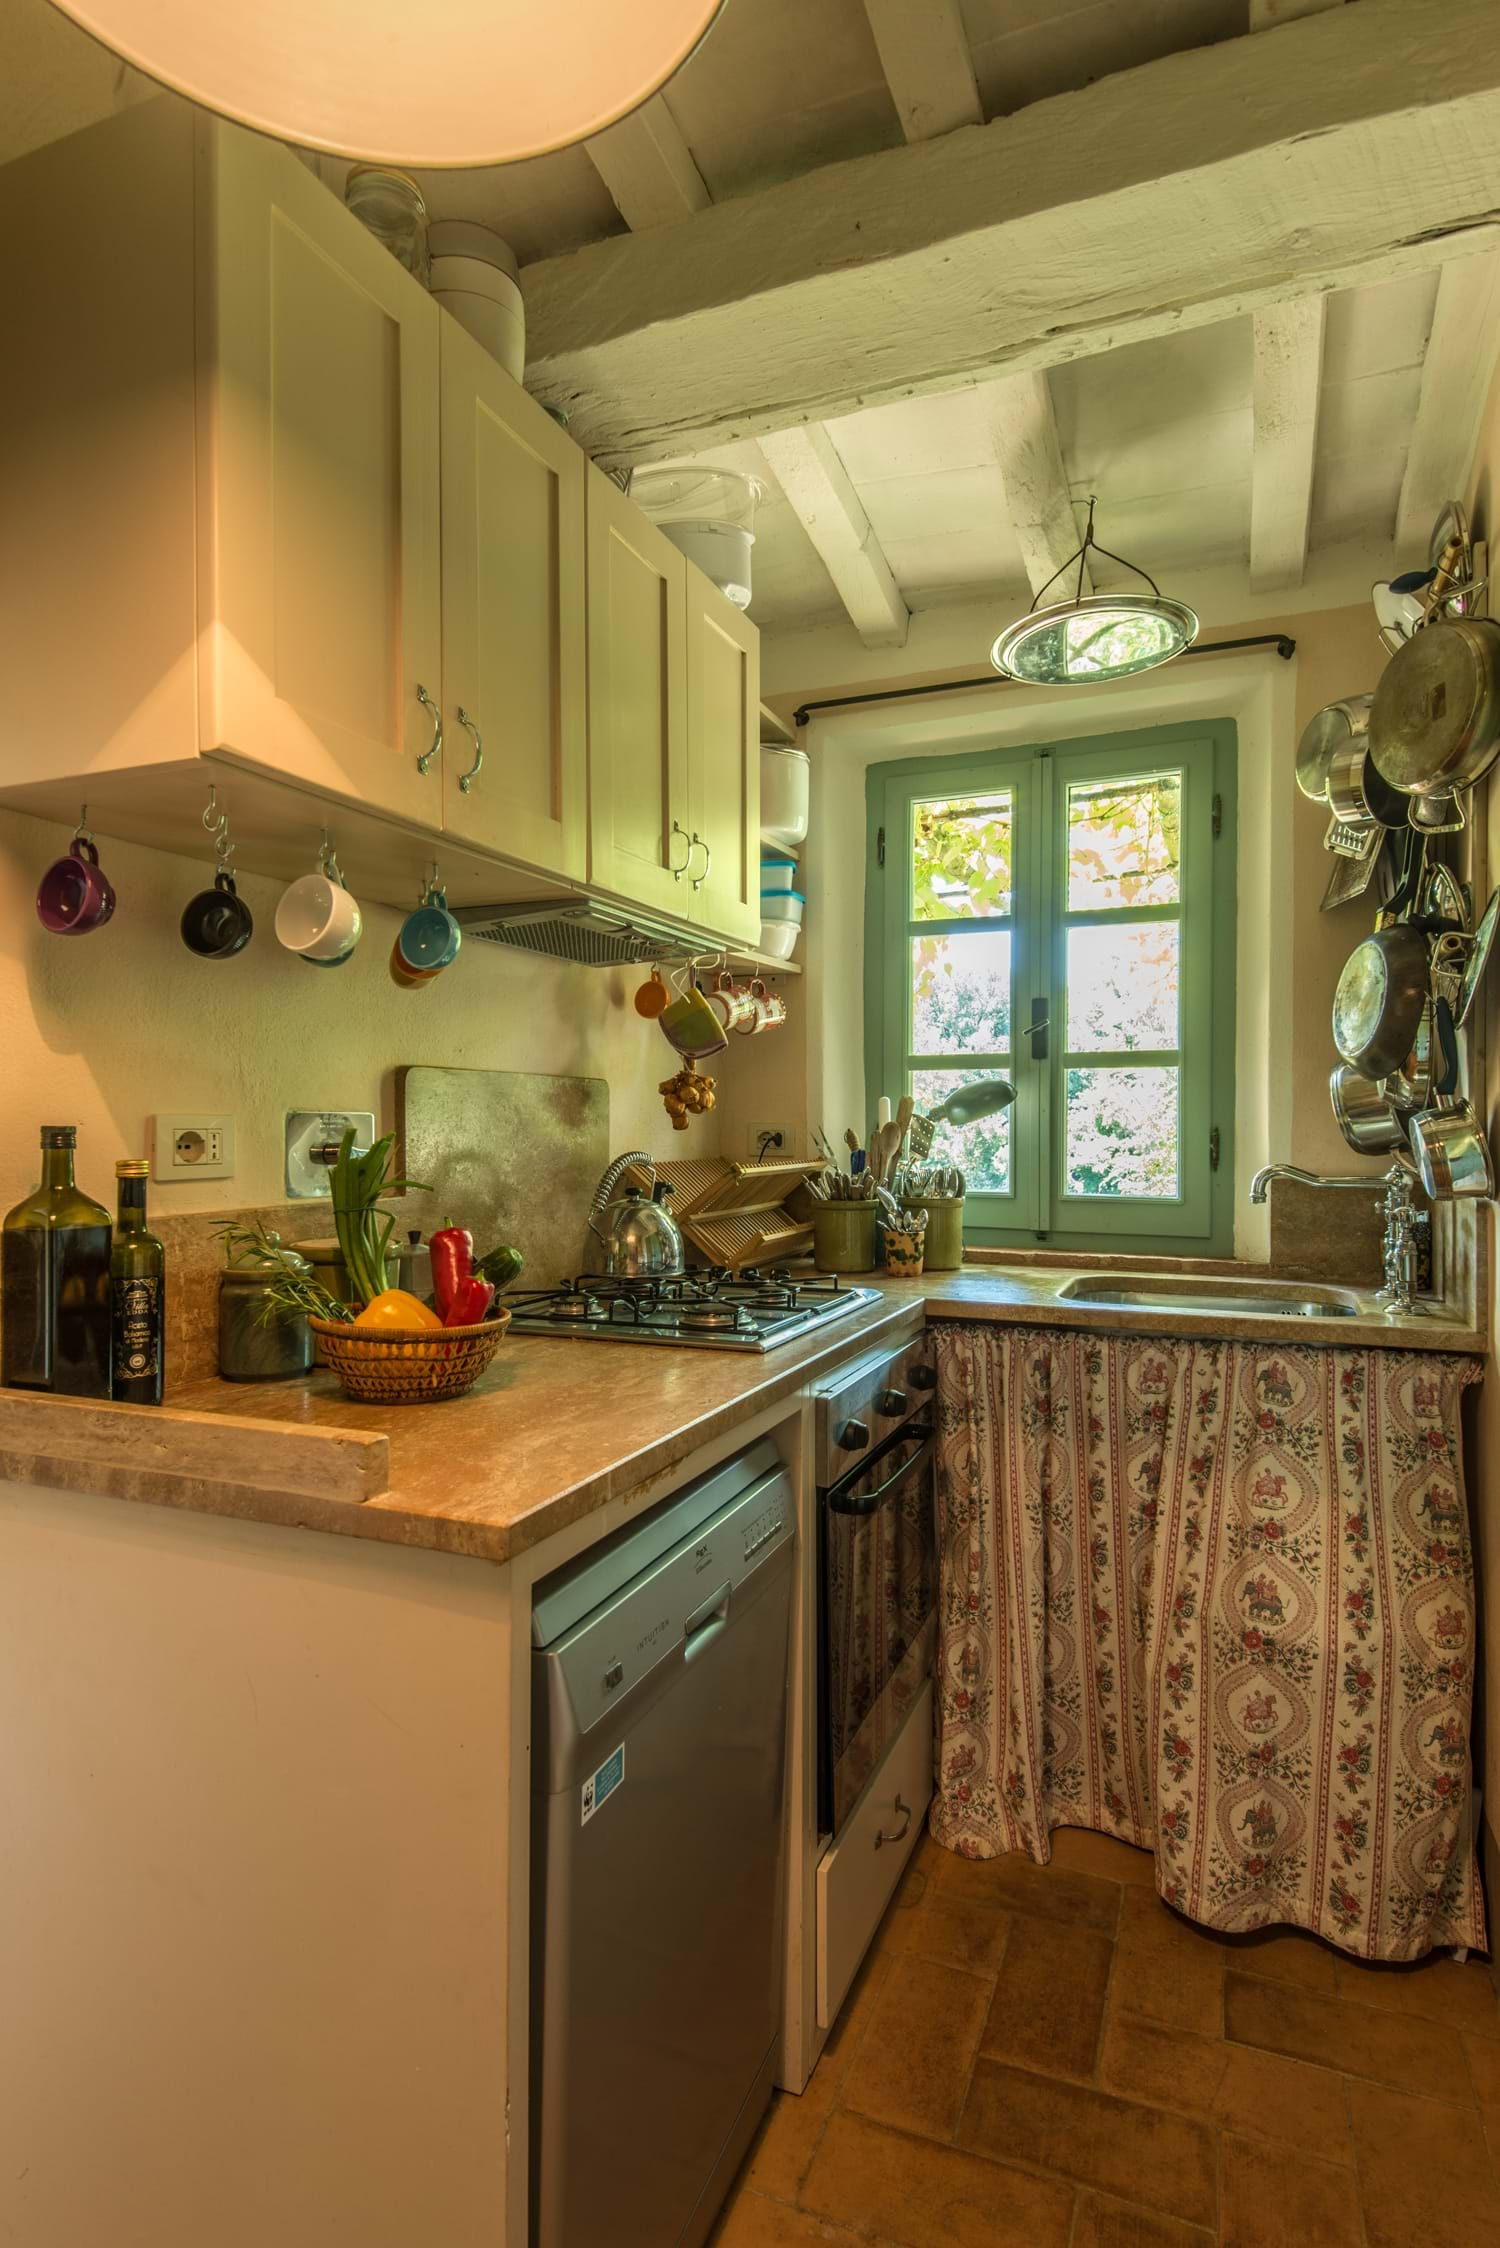 kitchen with hobs, oven and dishwasher Villa La Torretta